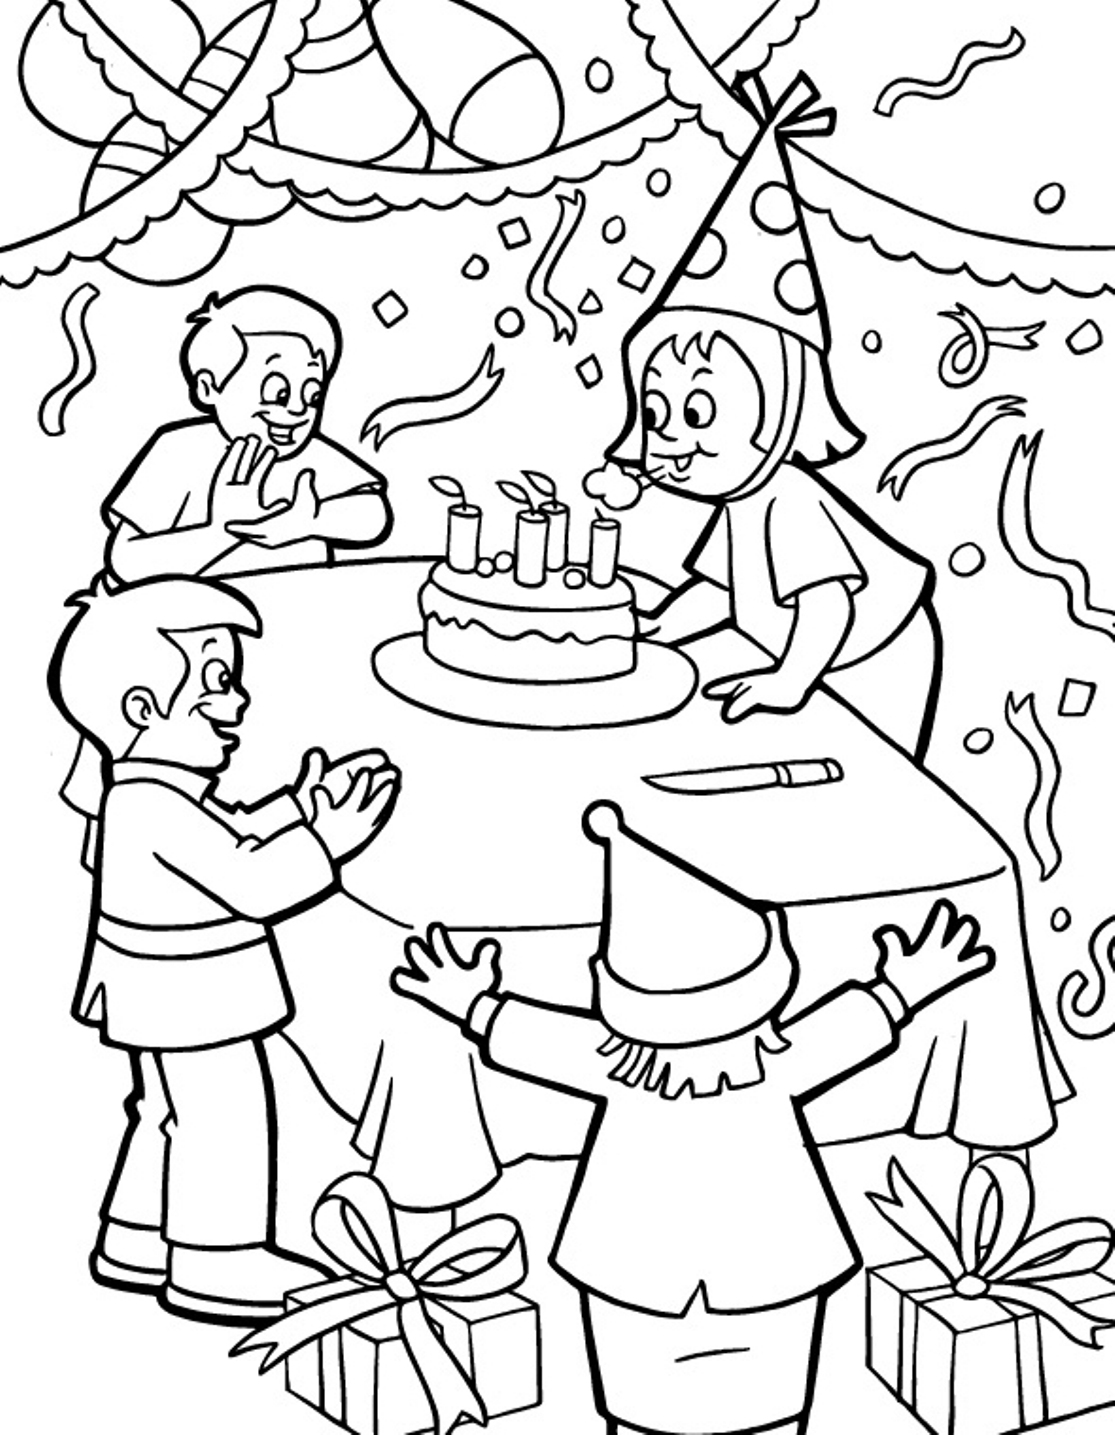 birthday party coloring pictures ; birthday-party-coloring-page-12